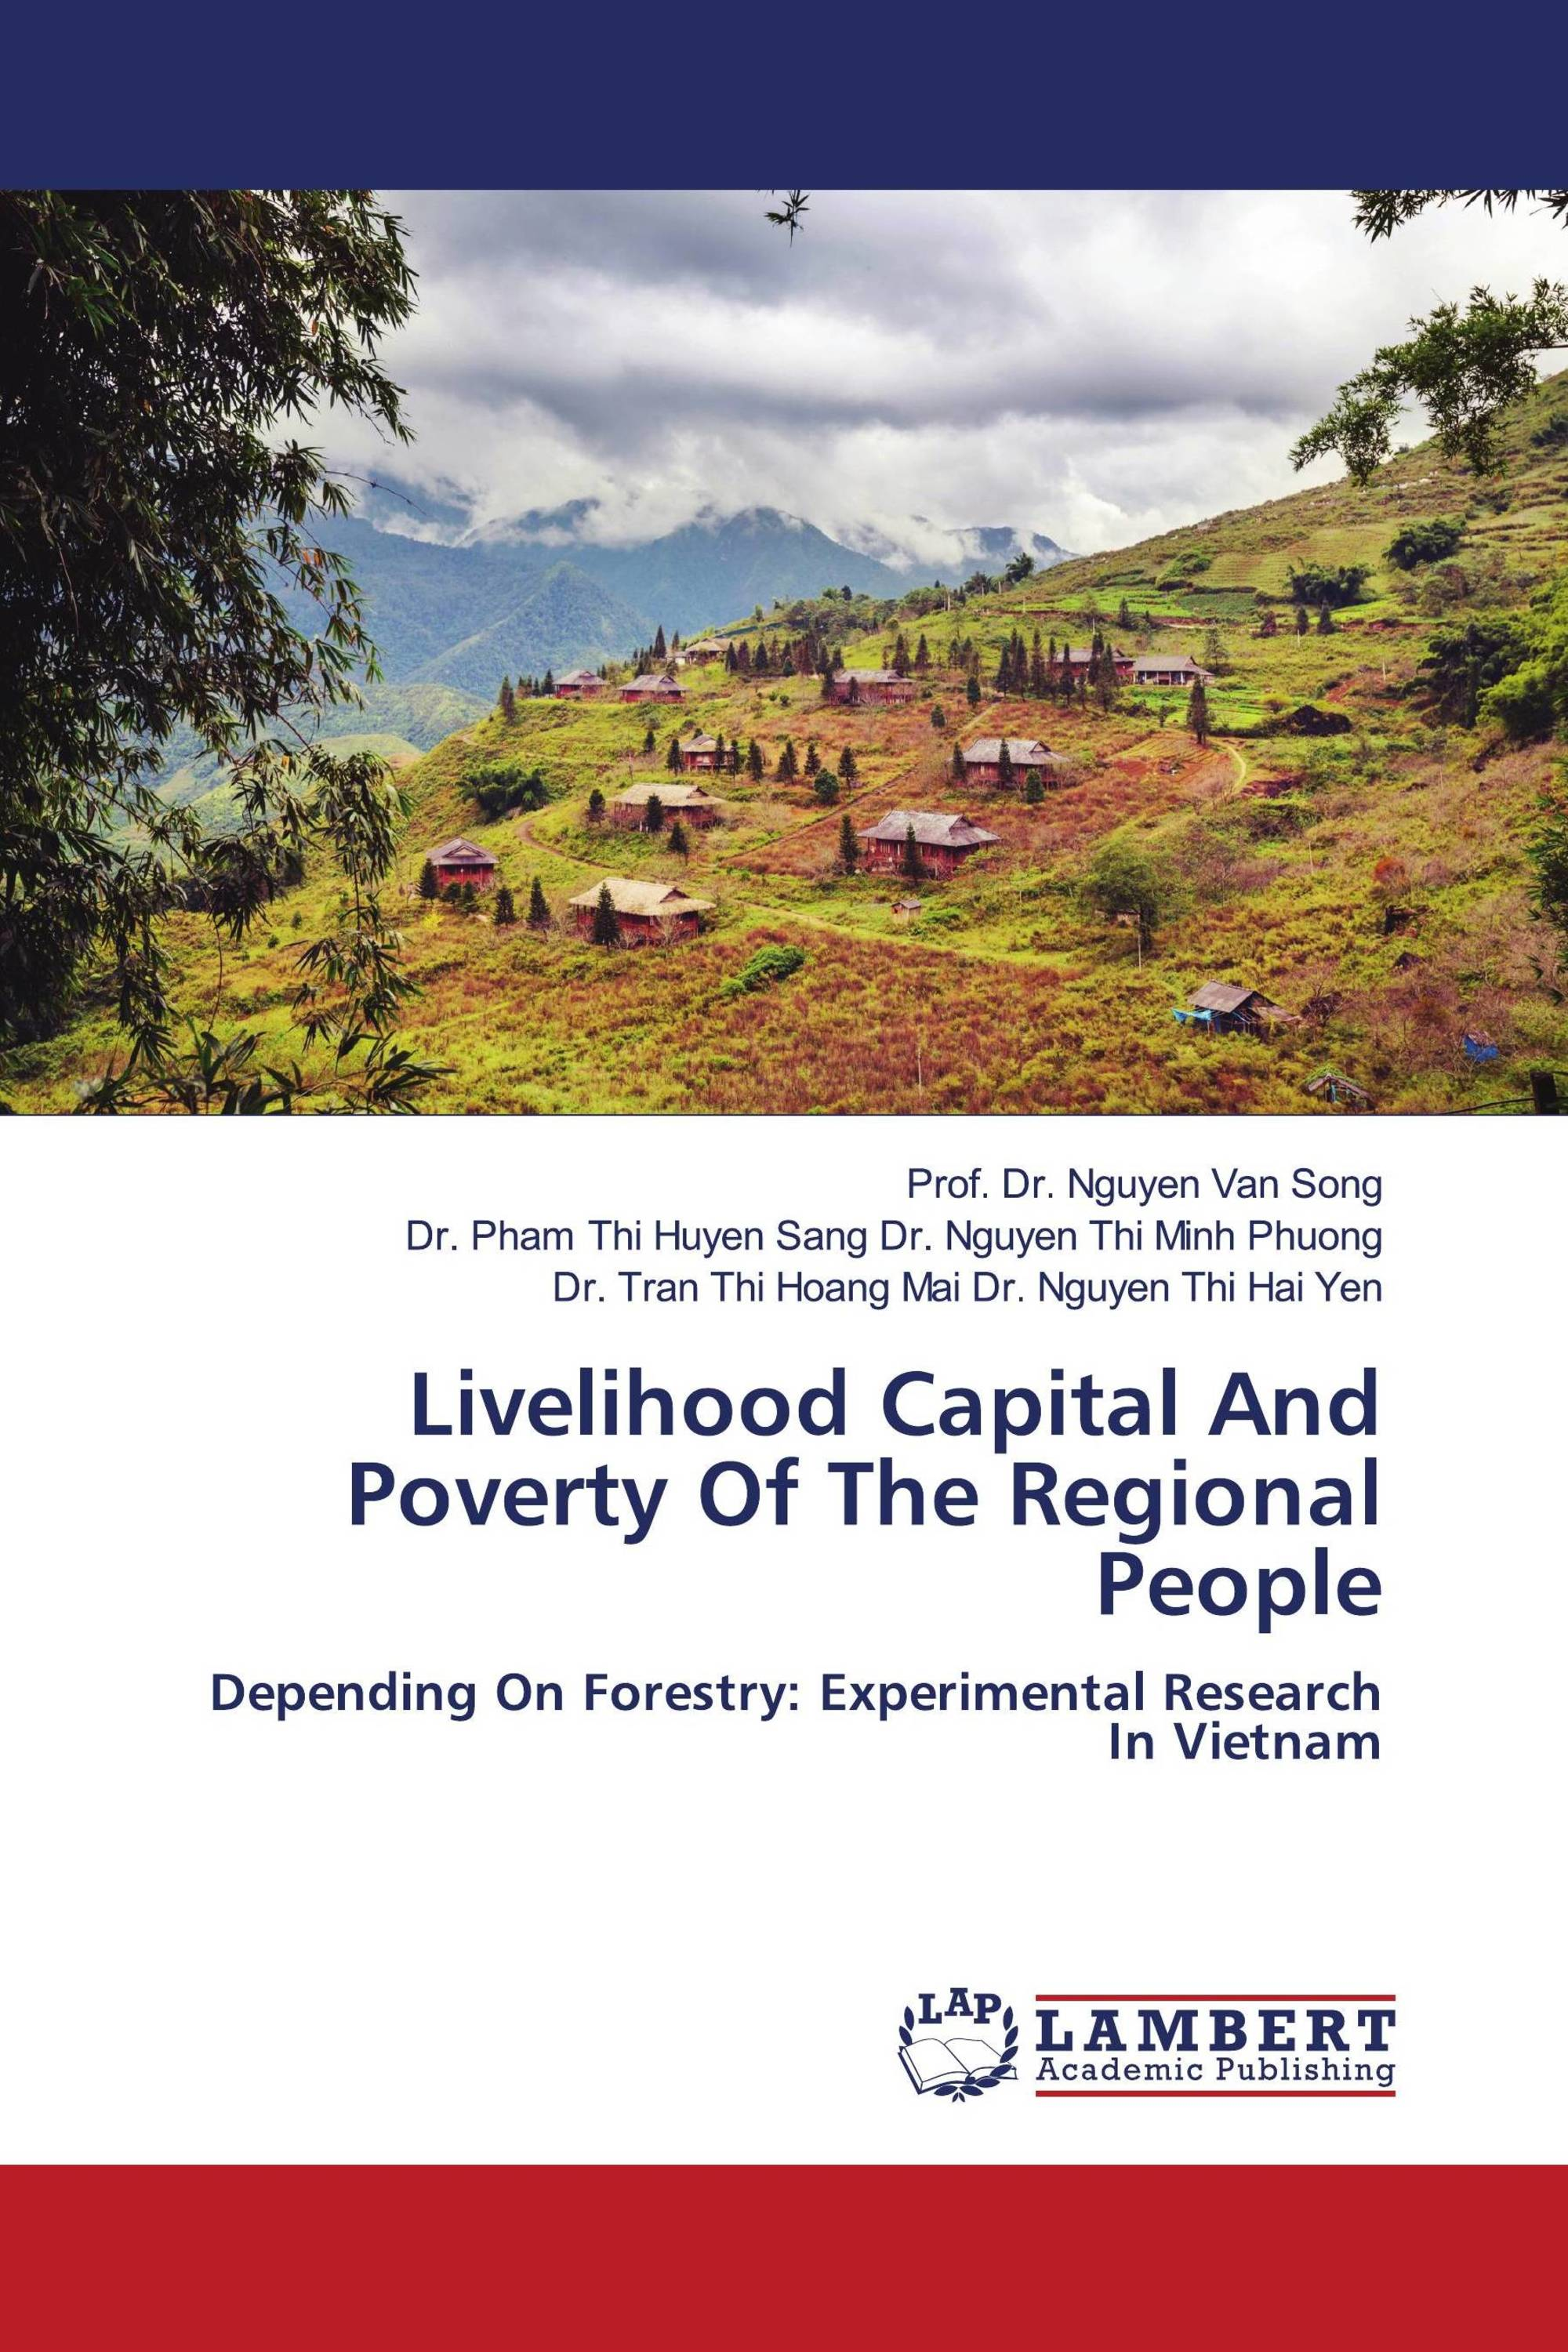 Livelihood Capital And Poverty Of The Regional People